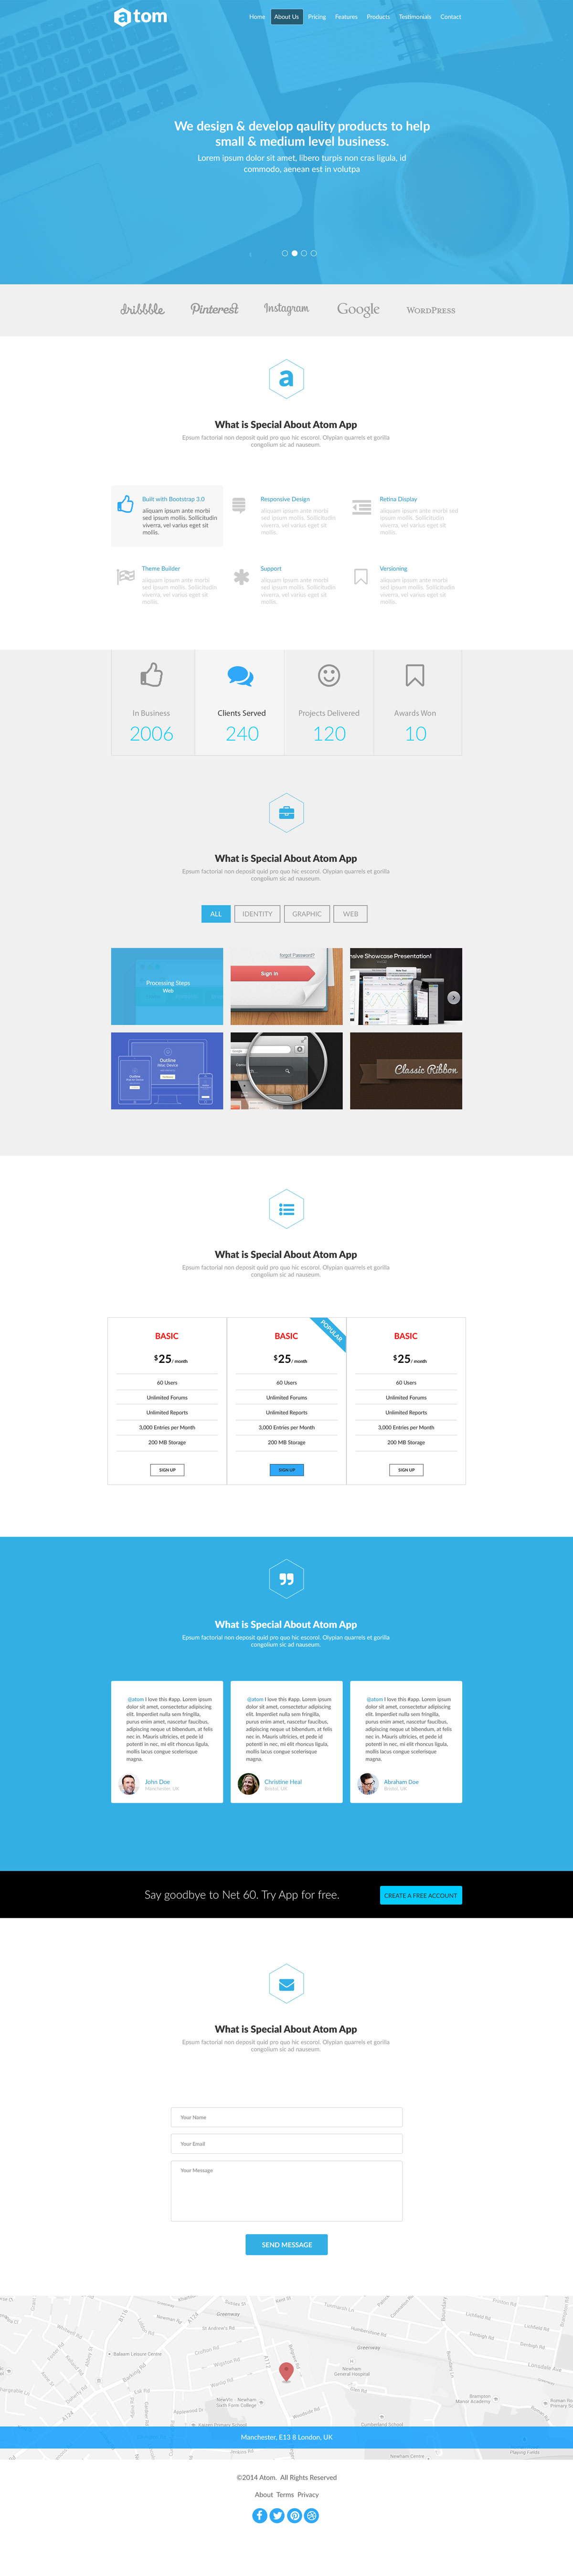 Atom - Free HTML Template for Applications | Free HTML5 Templates